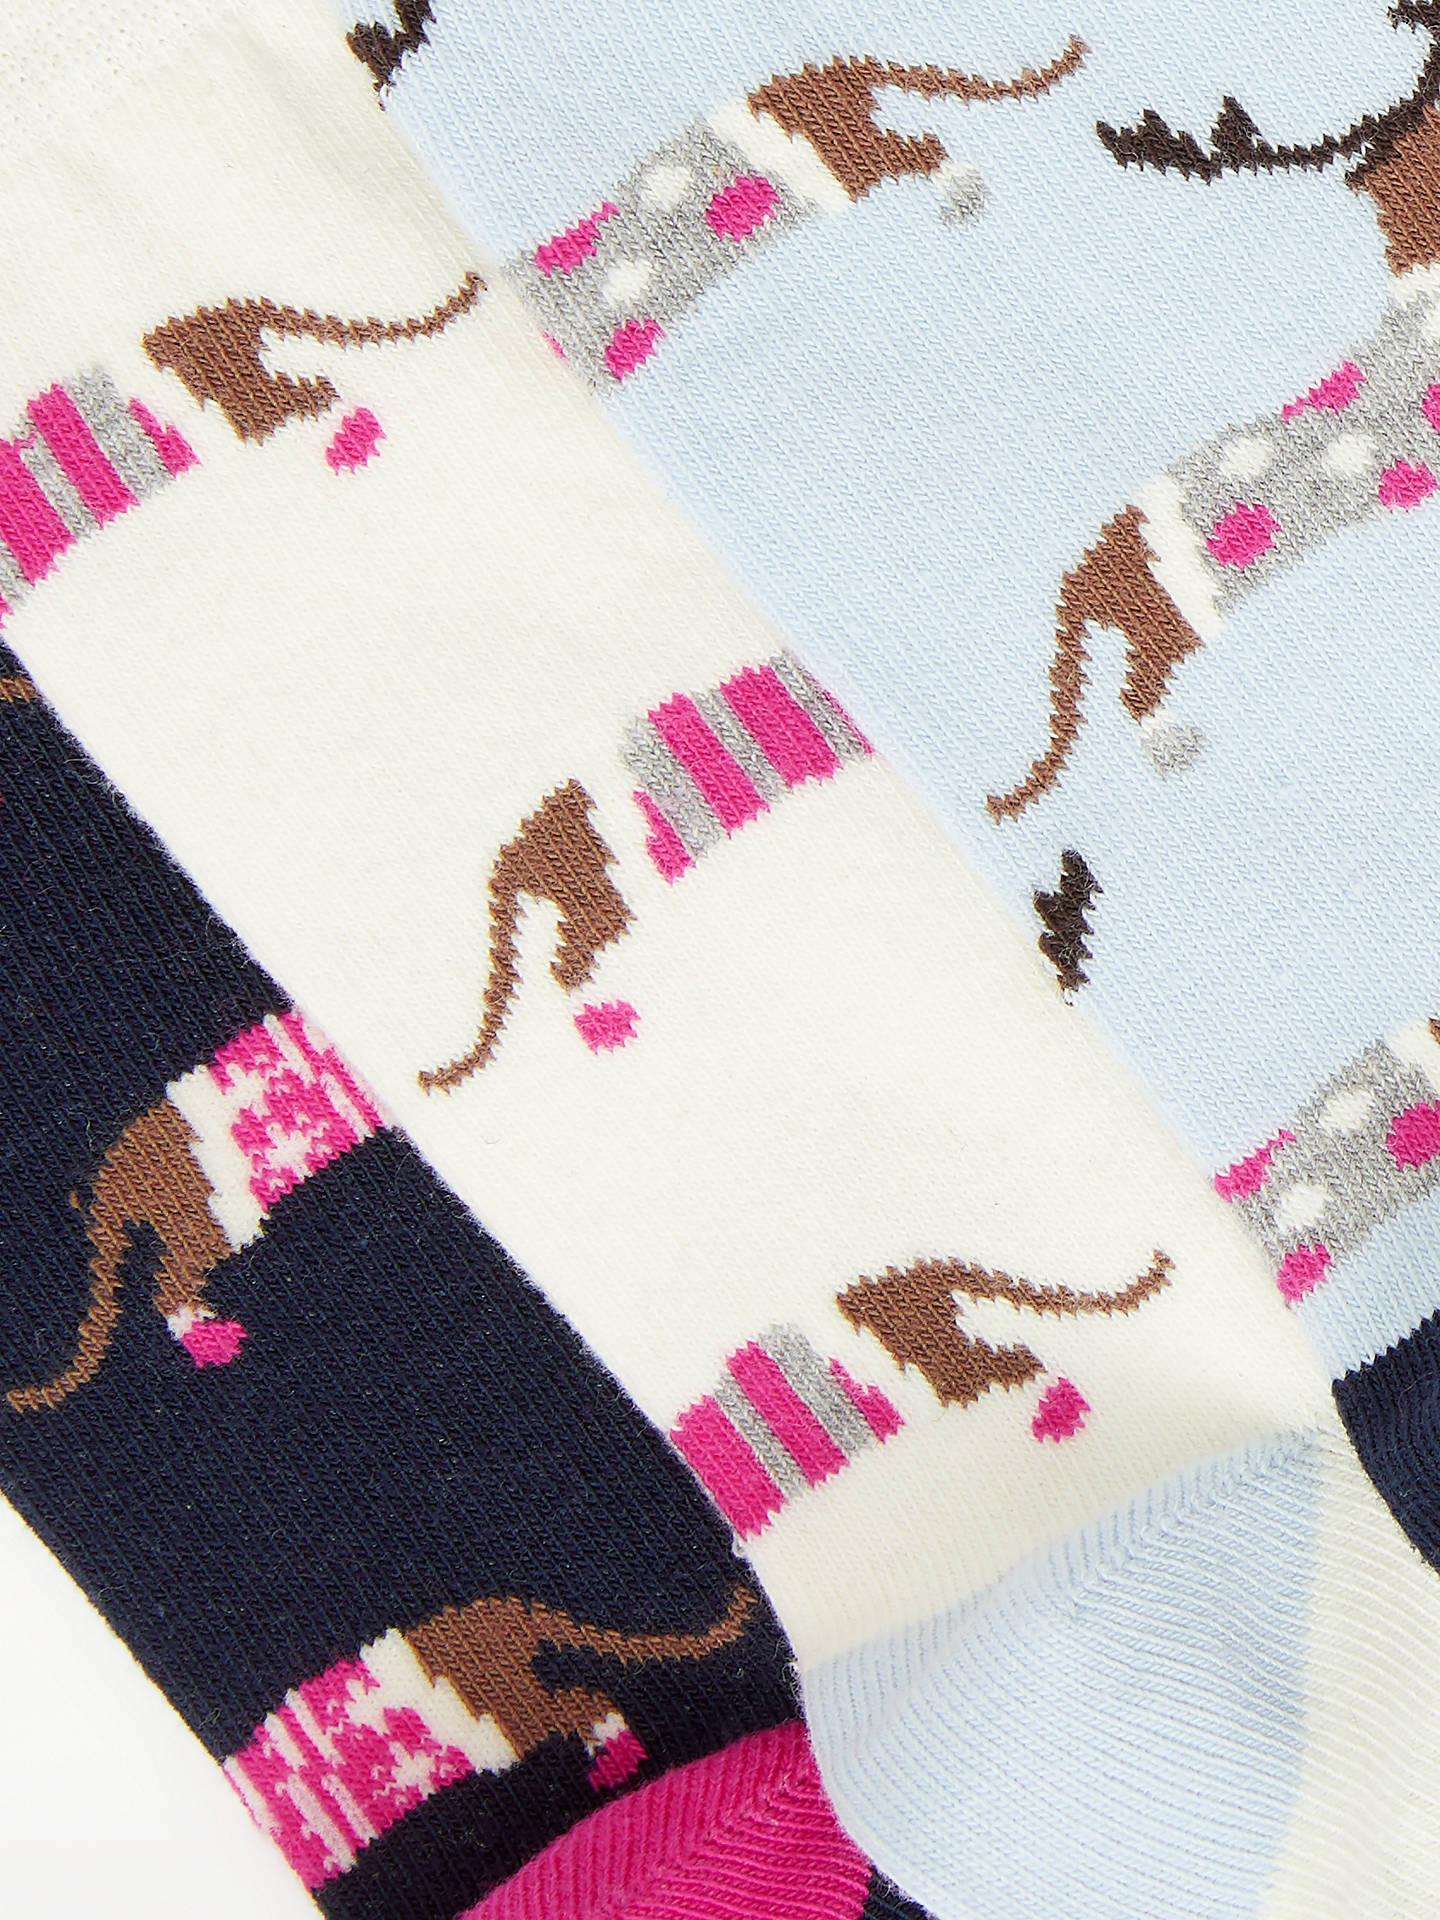 Buy John Lewis & Partners Christmas Dachshund Dog Socks, Pack of 3, Navy/Ivory/Blue, One Size Online at johnlewis.com